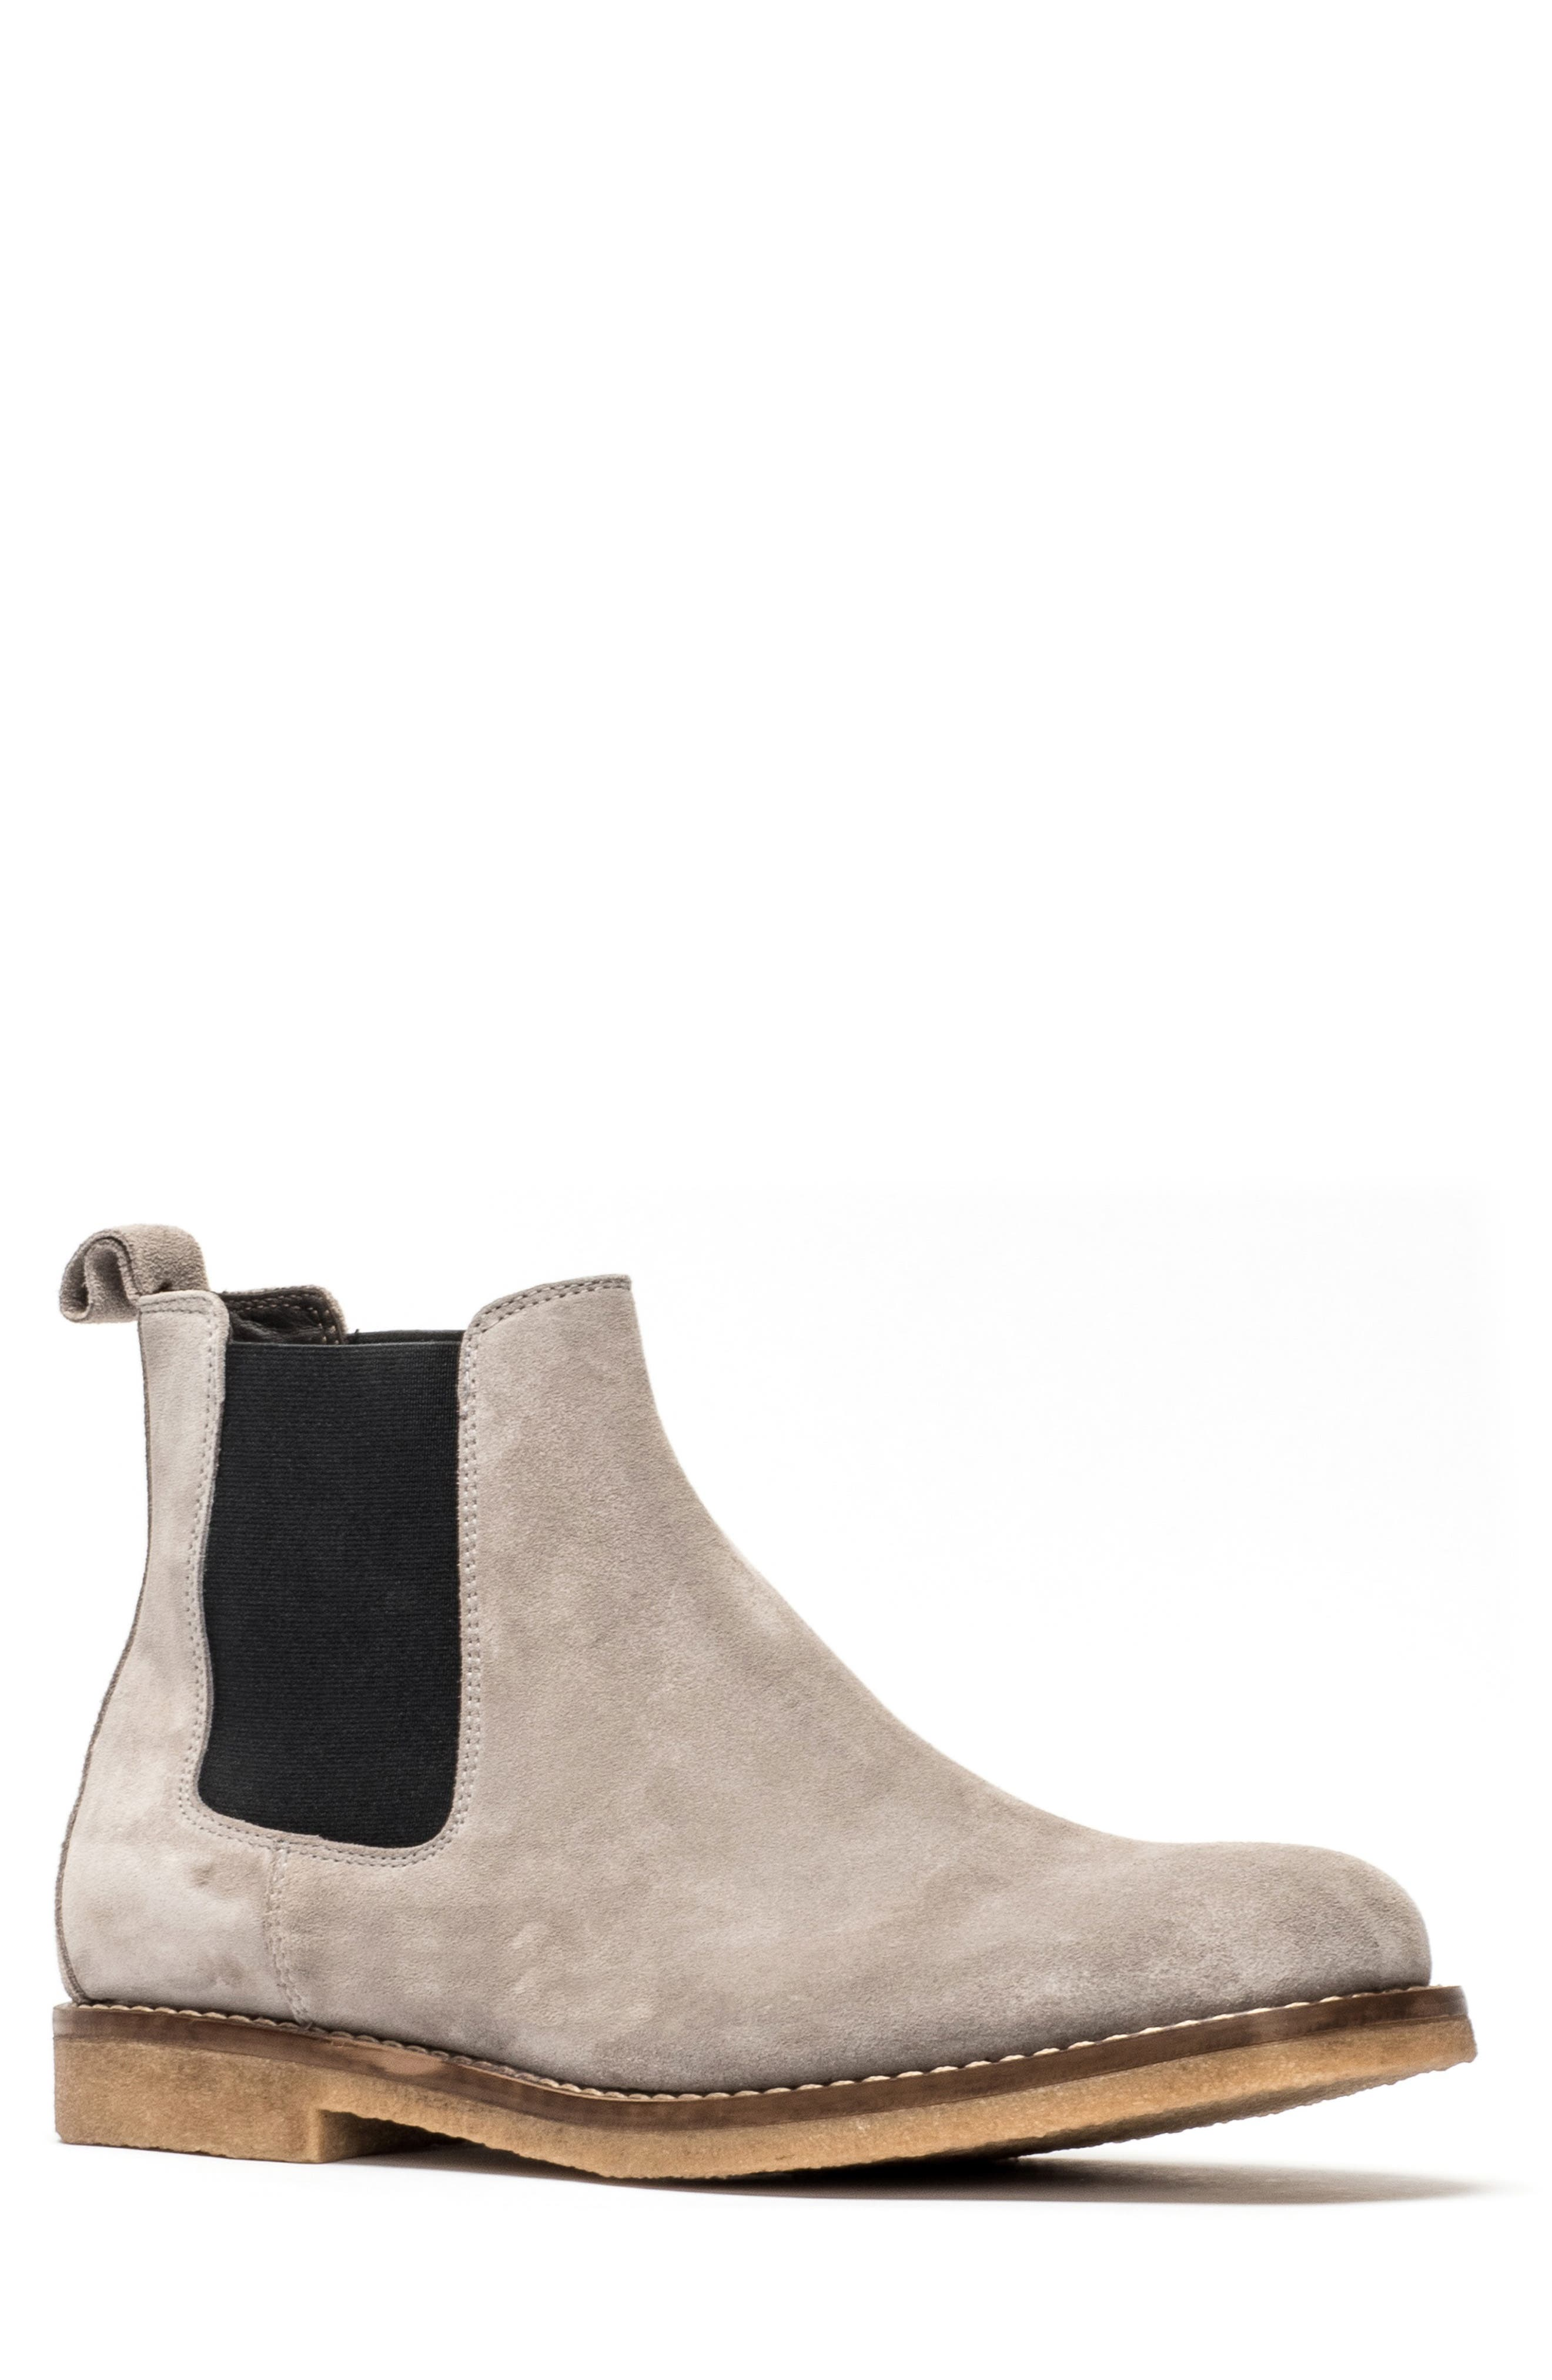 Gertrude Valley Water Repellent Chelsea Boot,                             Main thumbnail 1, color,                             STONE